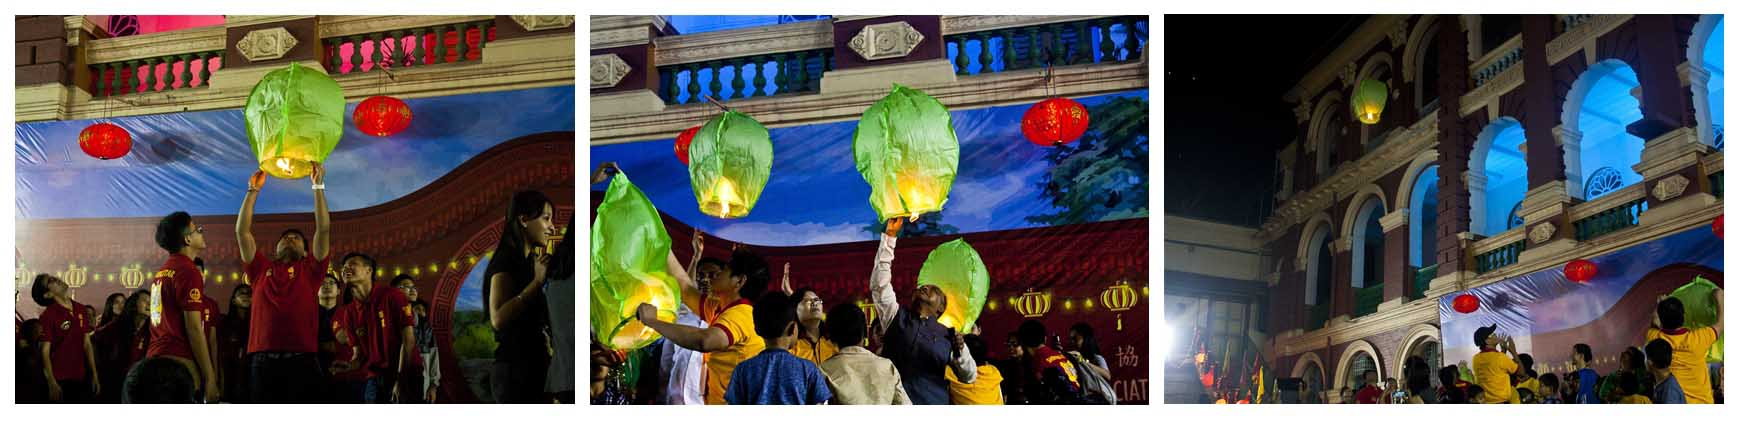 Chinese Lanterns - Lion Dance Display & Cultural Show 2016, Kolkata, India